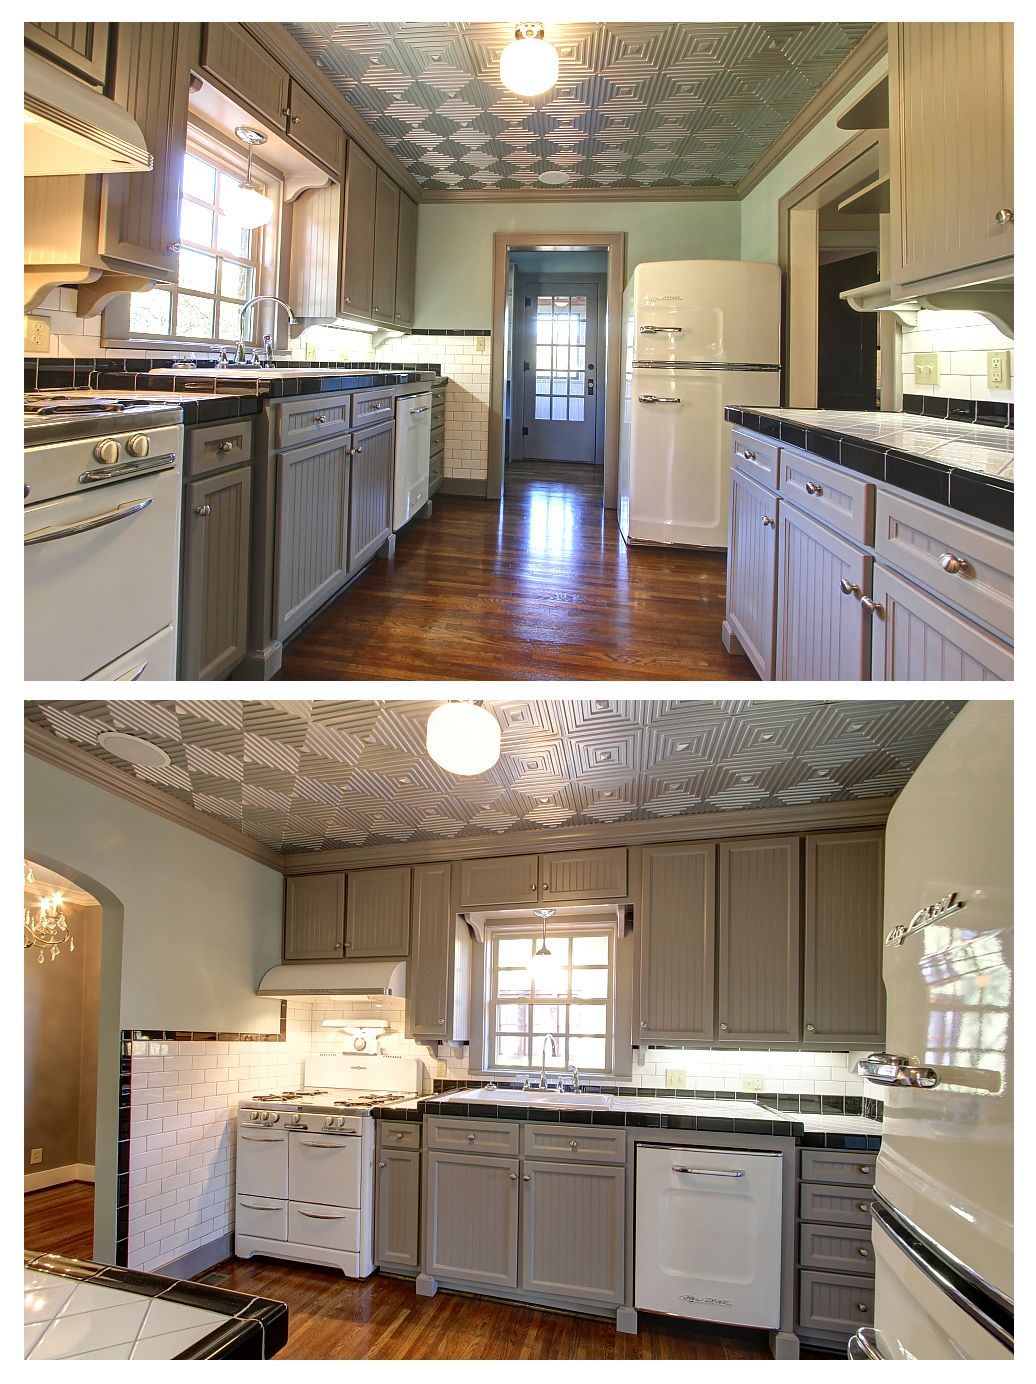 Modern kitchen in grey and white with Big Chill fridge and